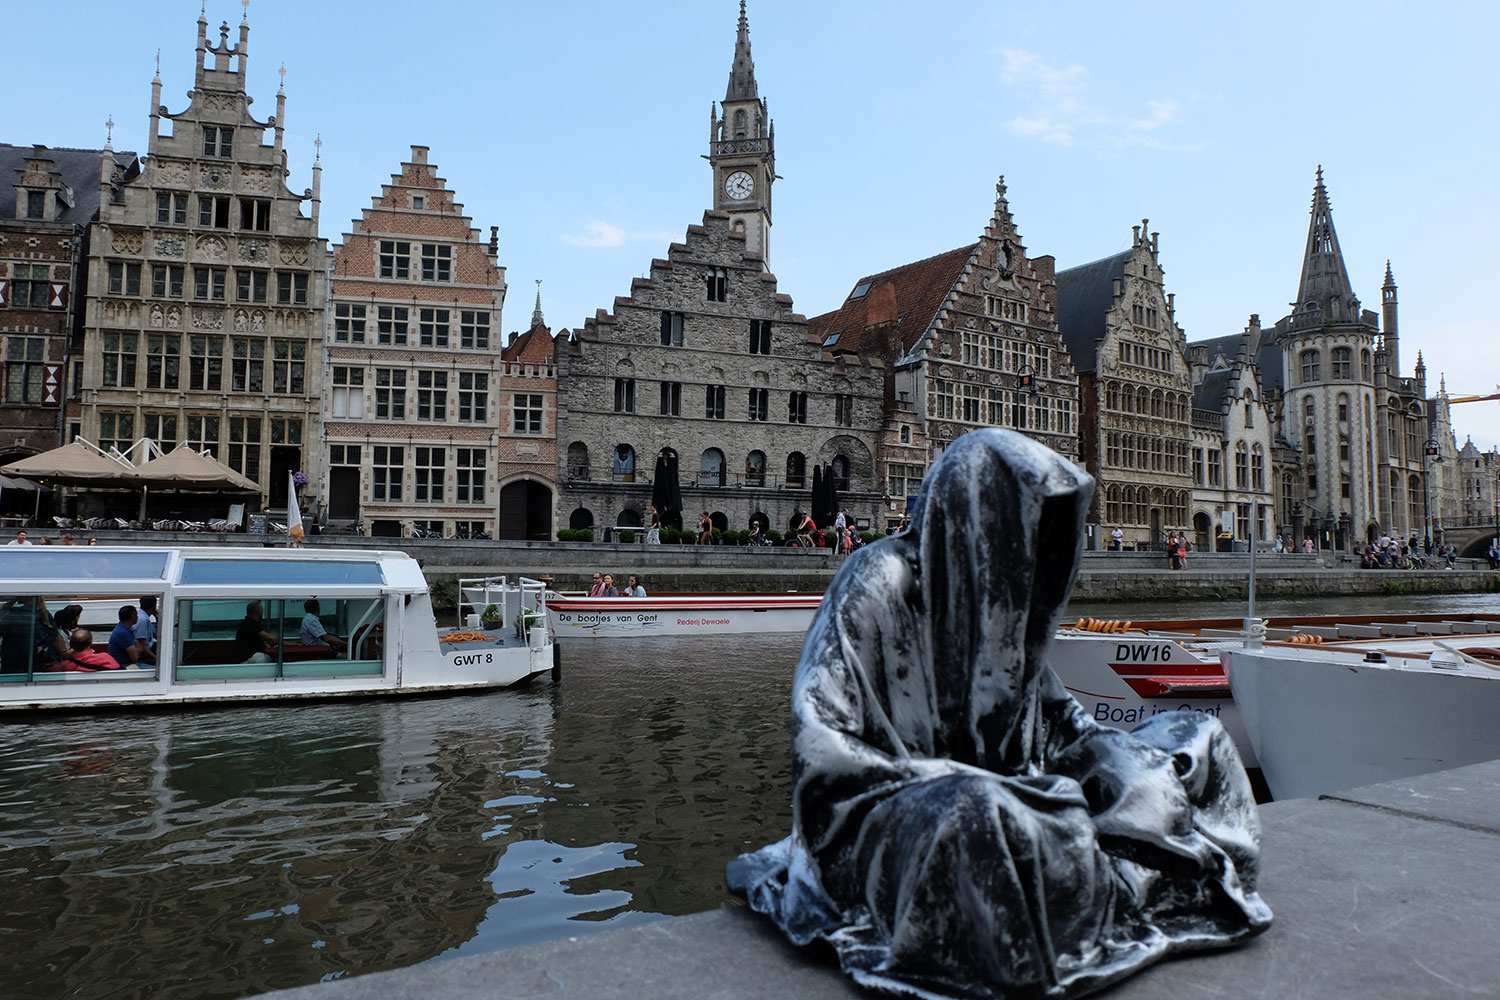 guardians-of-time-manfred-kili-kielnhofer-gent-belgium-contemporary-art-arts-design-sculpture-5278